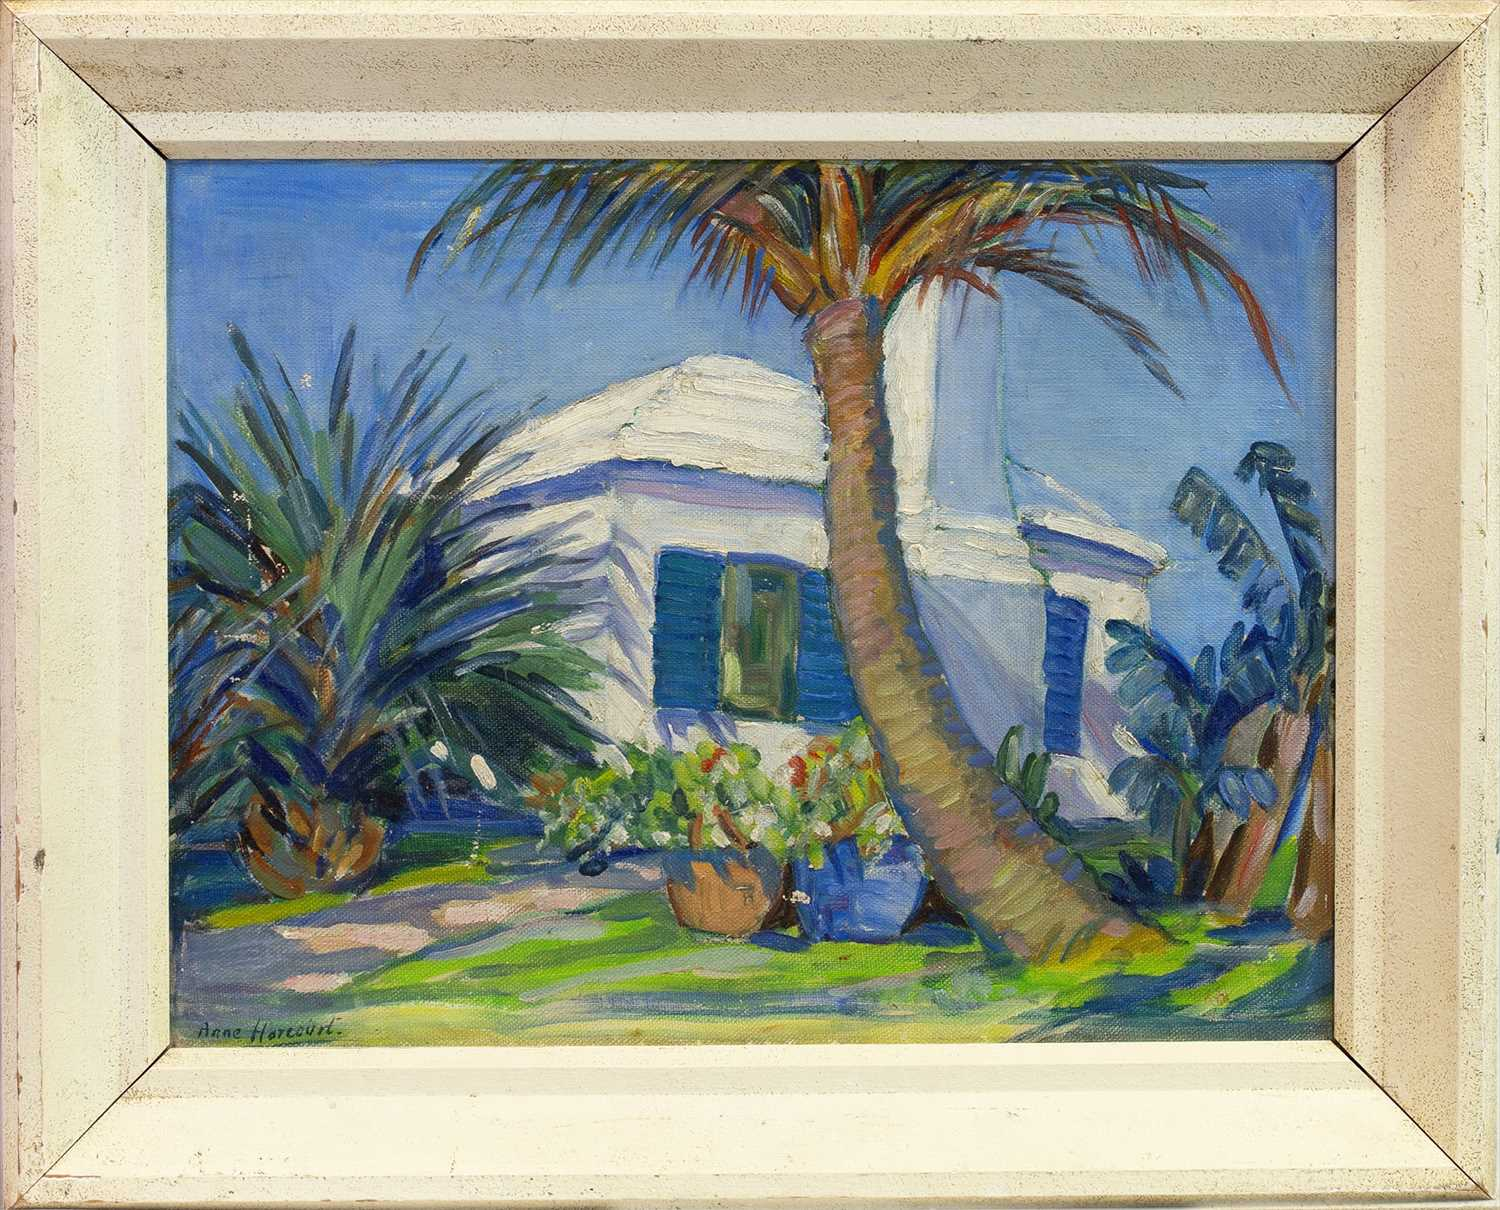 Lot 411 - THE VILLA, AN OIL BY ANNE HARCOURT